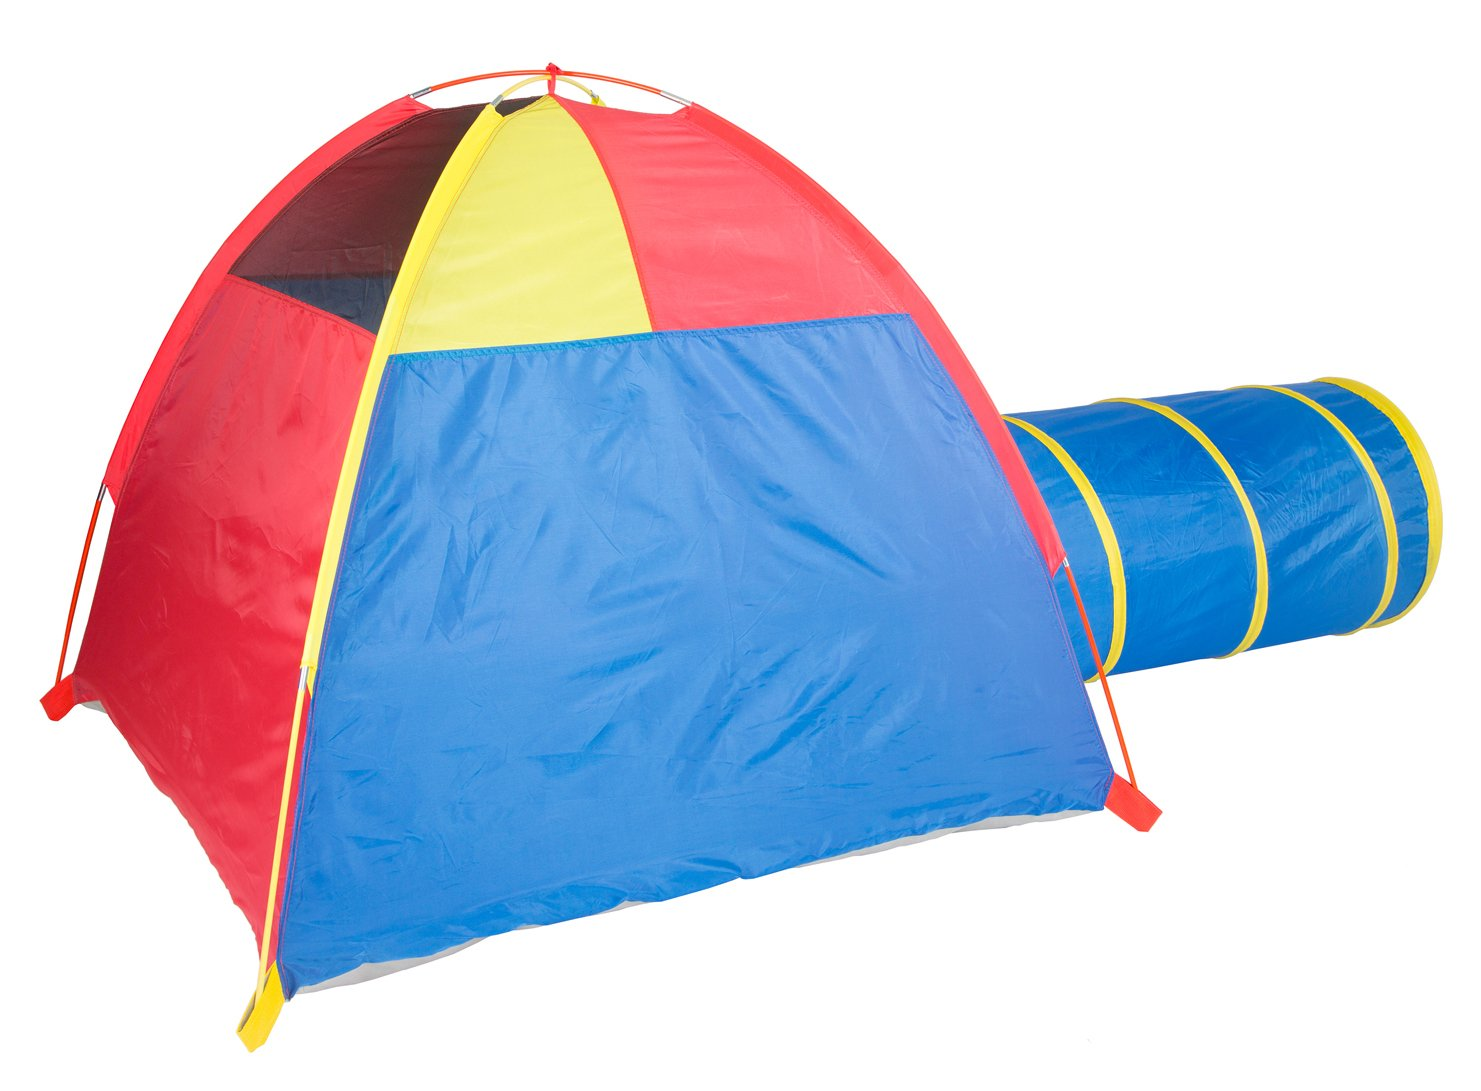 Outdoor Fun 20414 Pacific Play Tents Kids Hide-Me Dome Tent and Crawl Tunnel Combo for Indoor